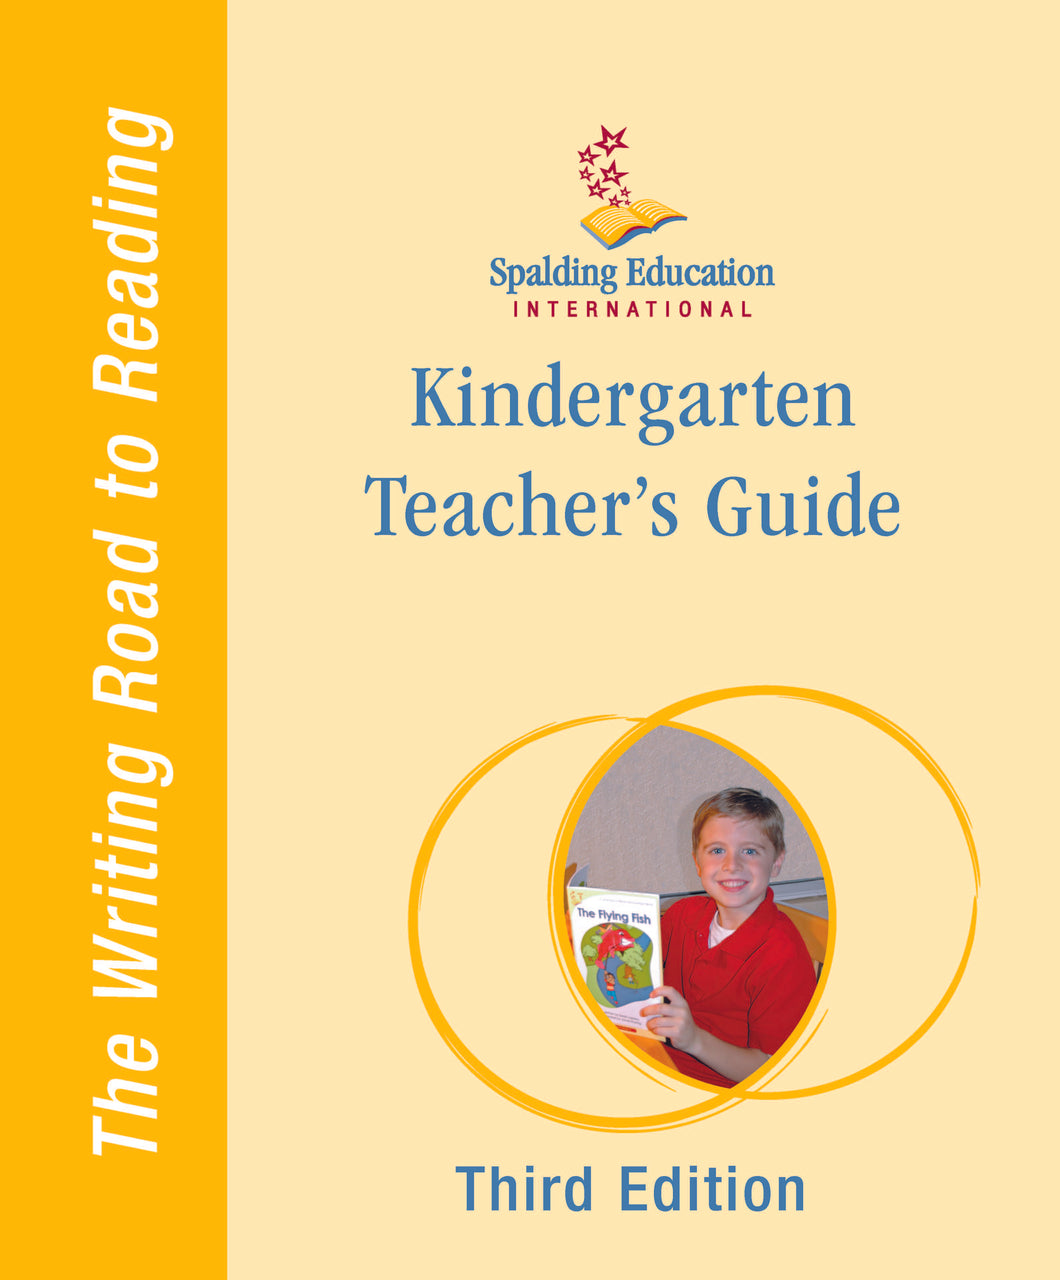 CTE0 Classic Teacher's Guide Ebook - Kindergarten